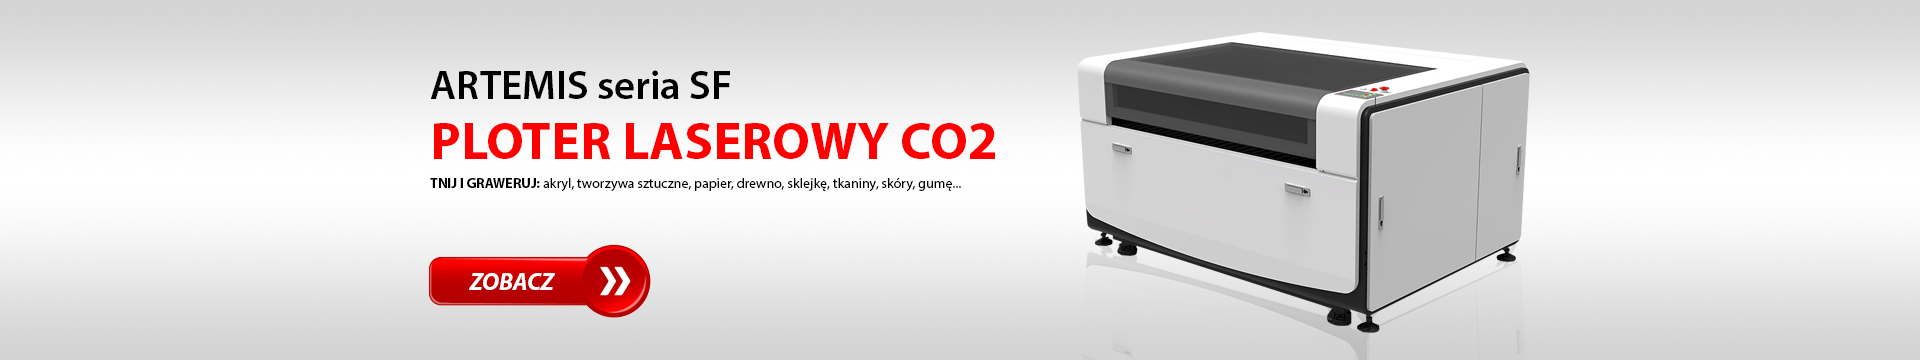 Ploter laserowy CO2 / Laser CO2